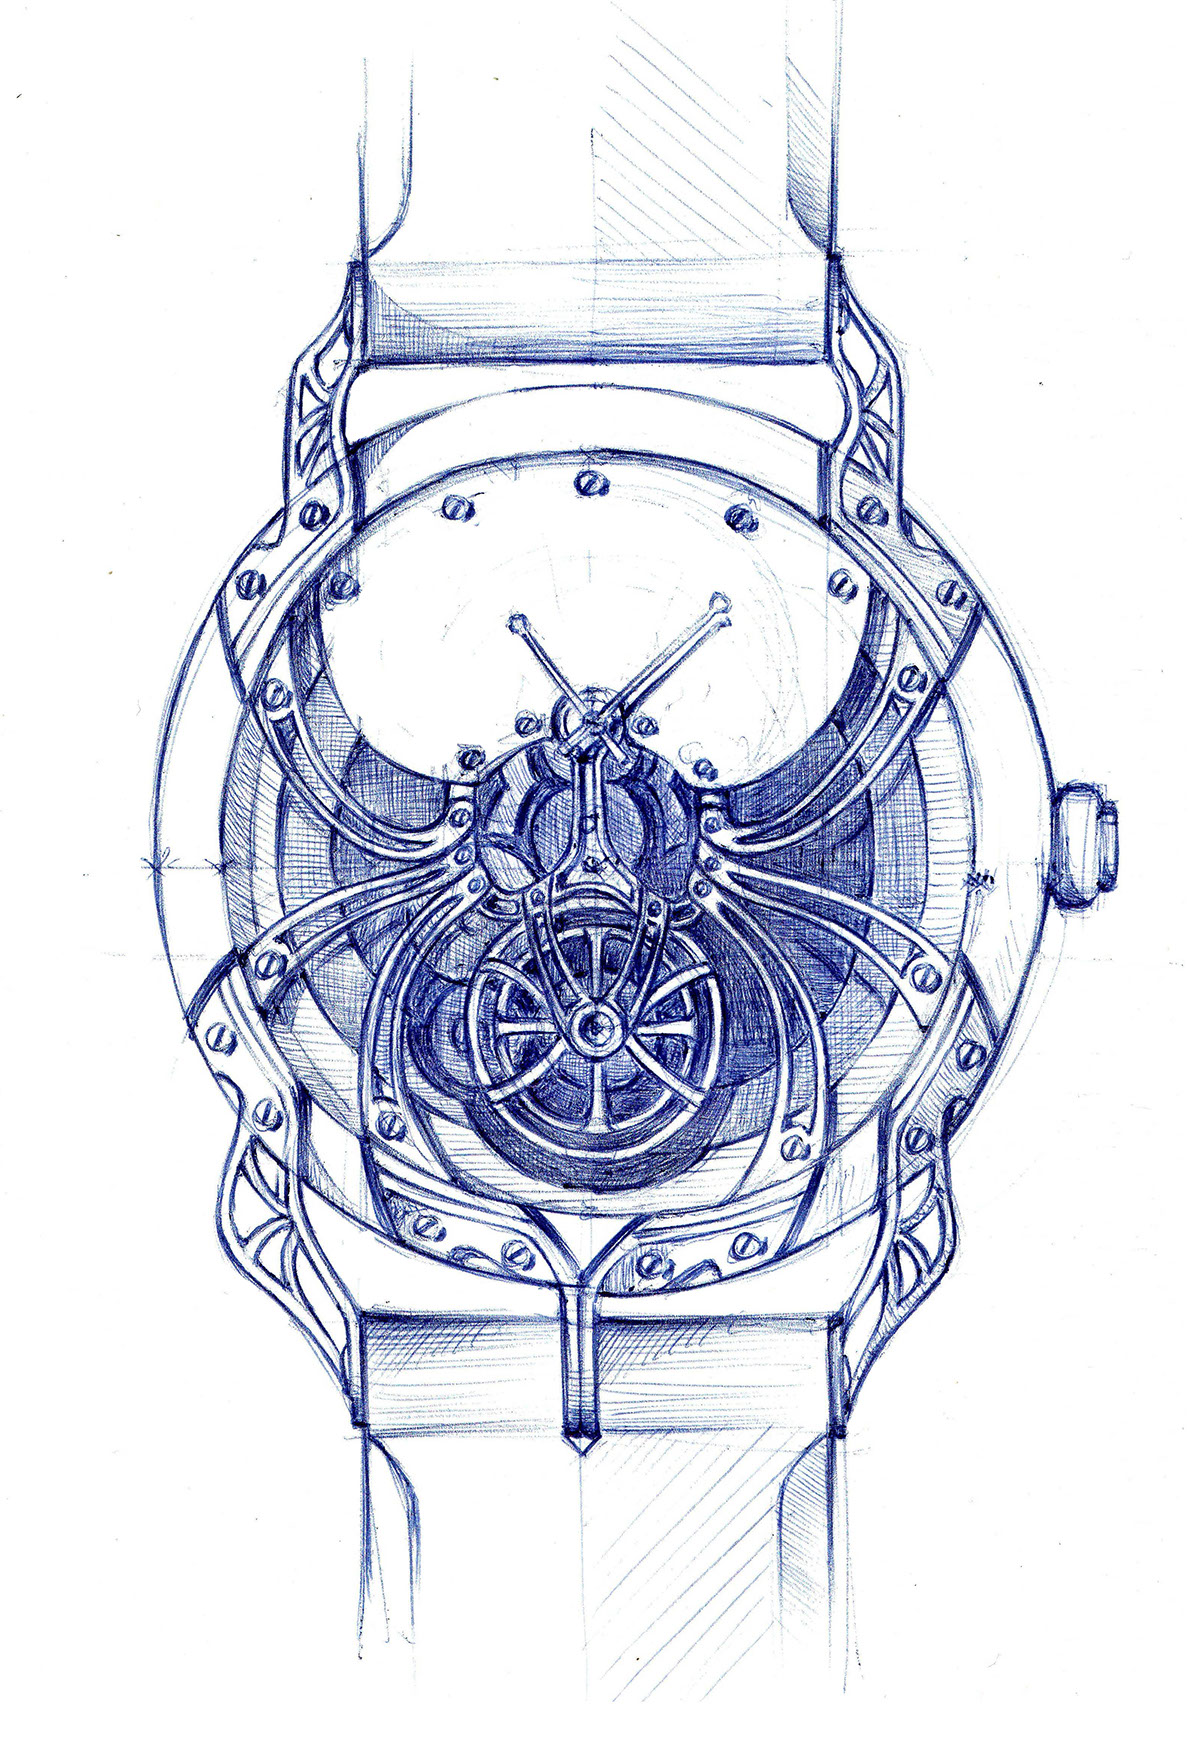 watches sketch of use drawing vector image your variant hand stock icon shutterstock for website icons style good